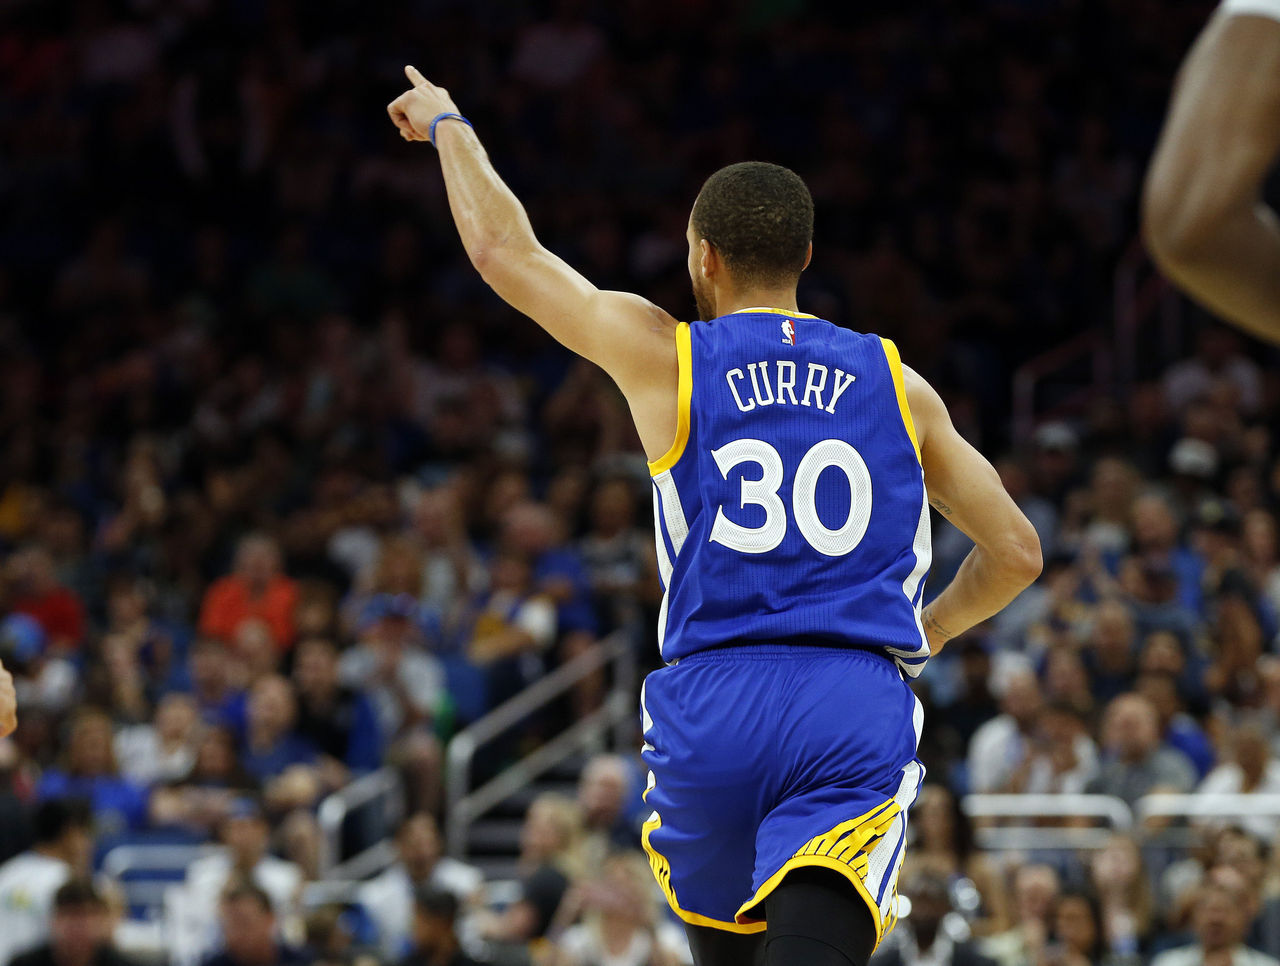 Cropped 2017 01 22t193833z 1278932330 nocid rtrmadp 3 nba golden state warriors at orlando magic